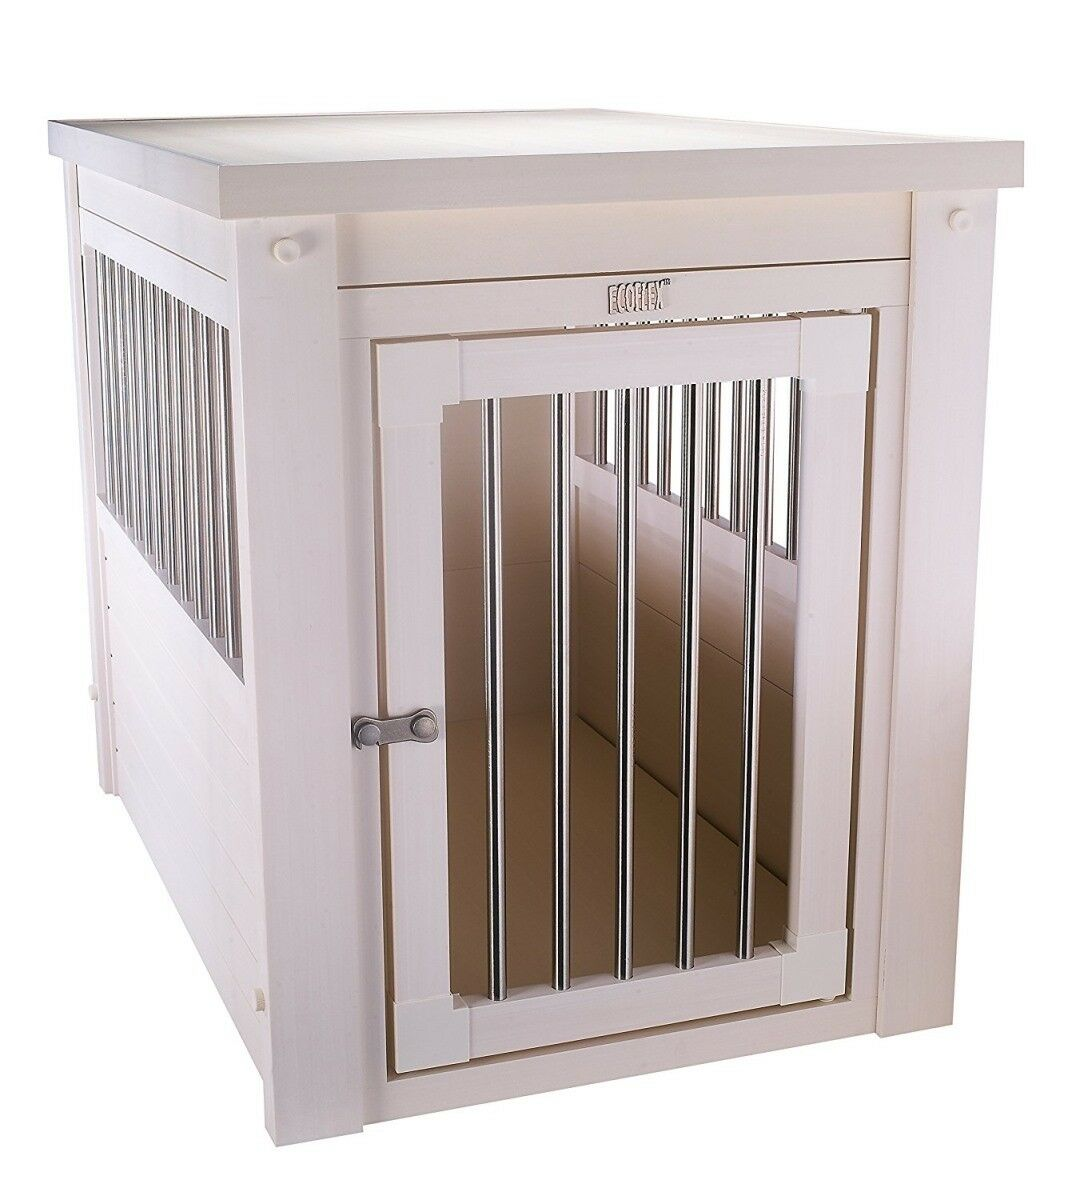 New Age Pet EHHC404S EcoFLEX Dog Crate - Antique White Small